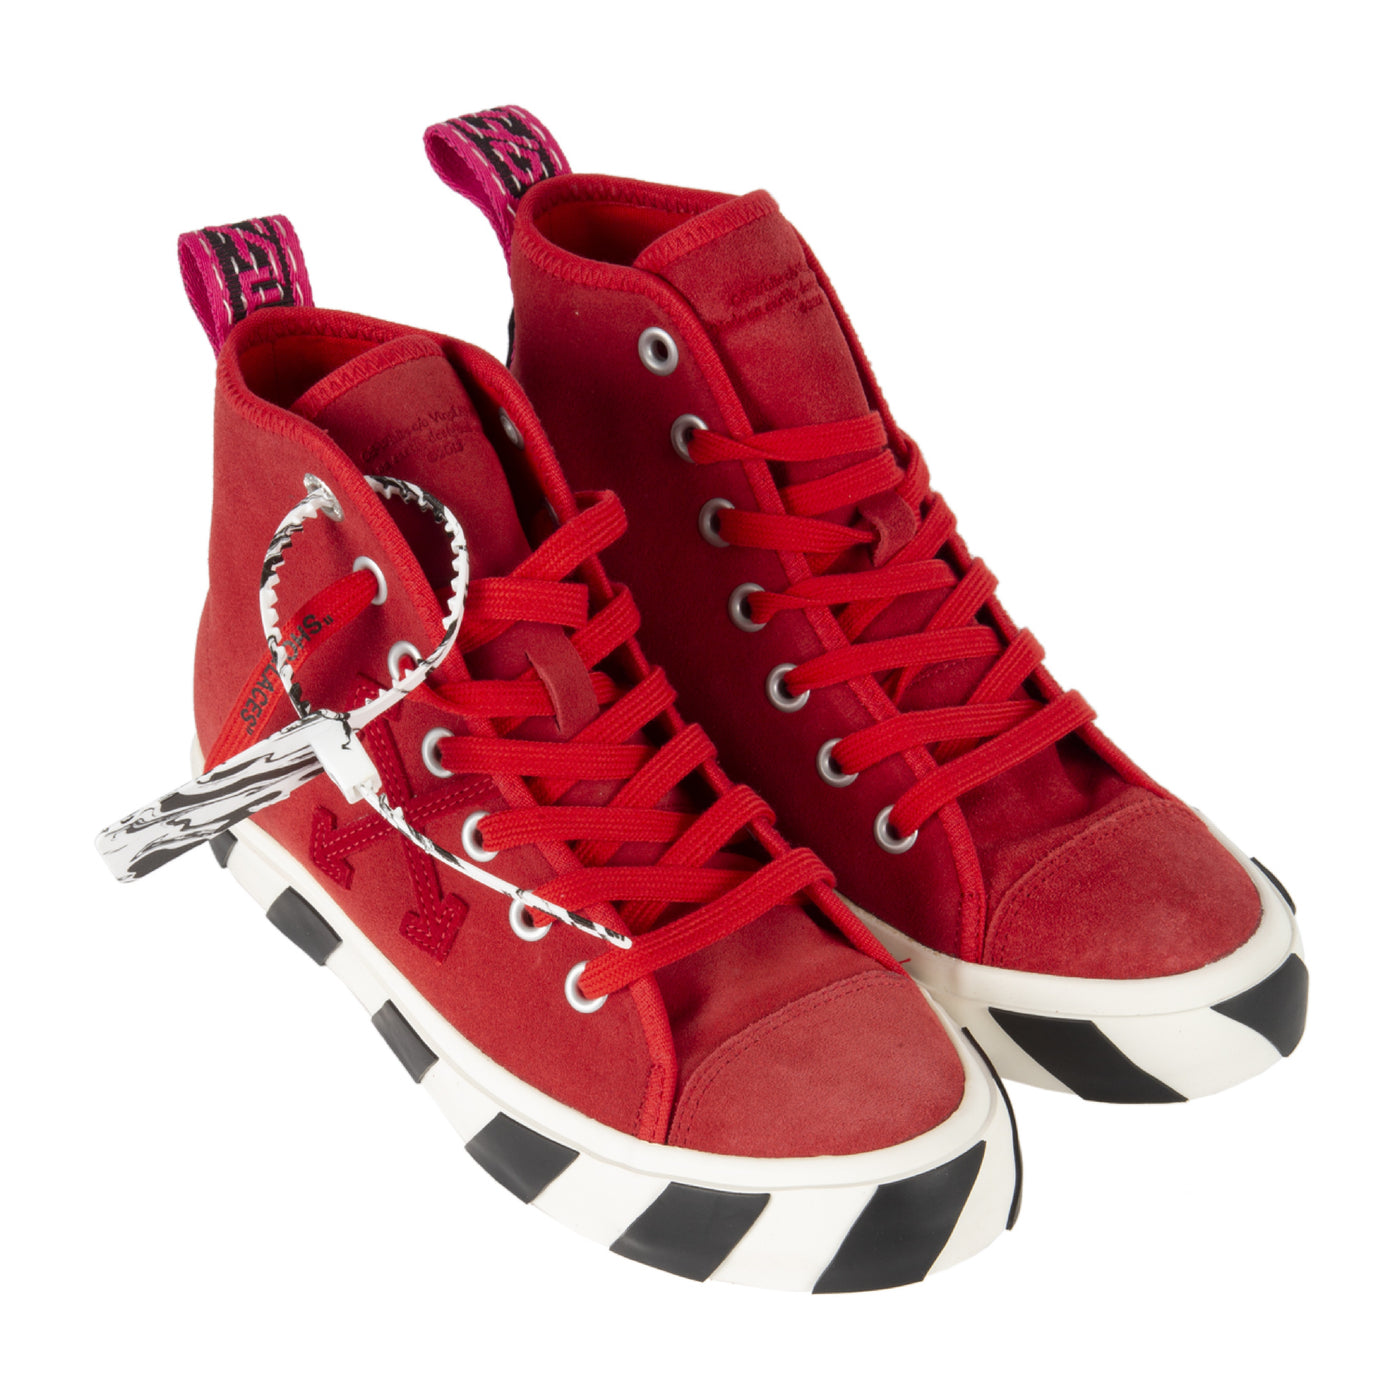 Load image into Gallery viewer, OFF-WHITE MID TOP VULCANIZED SNEAKER RED